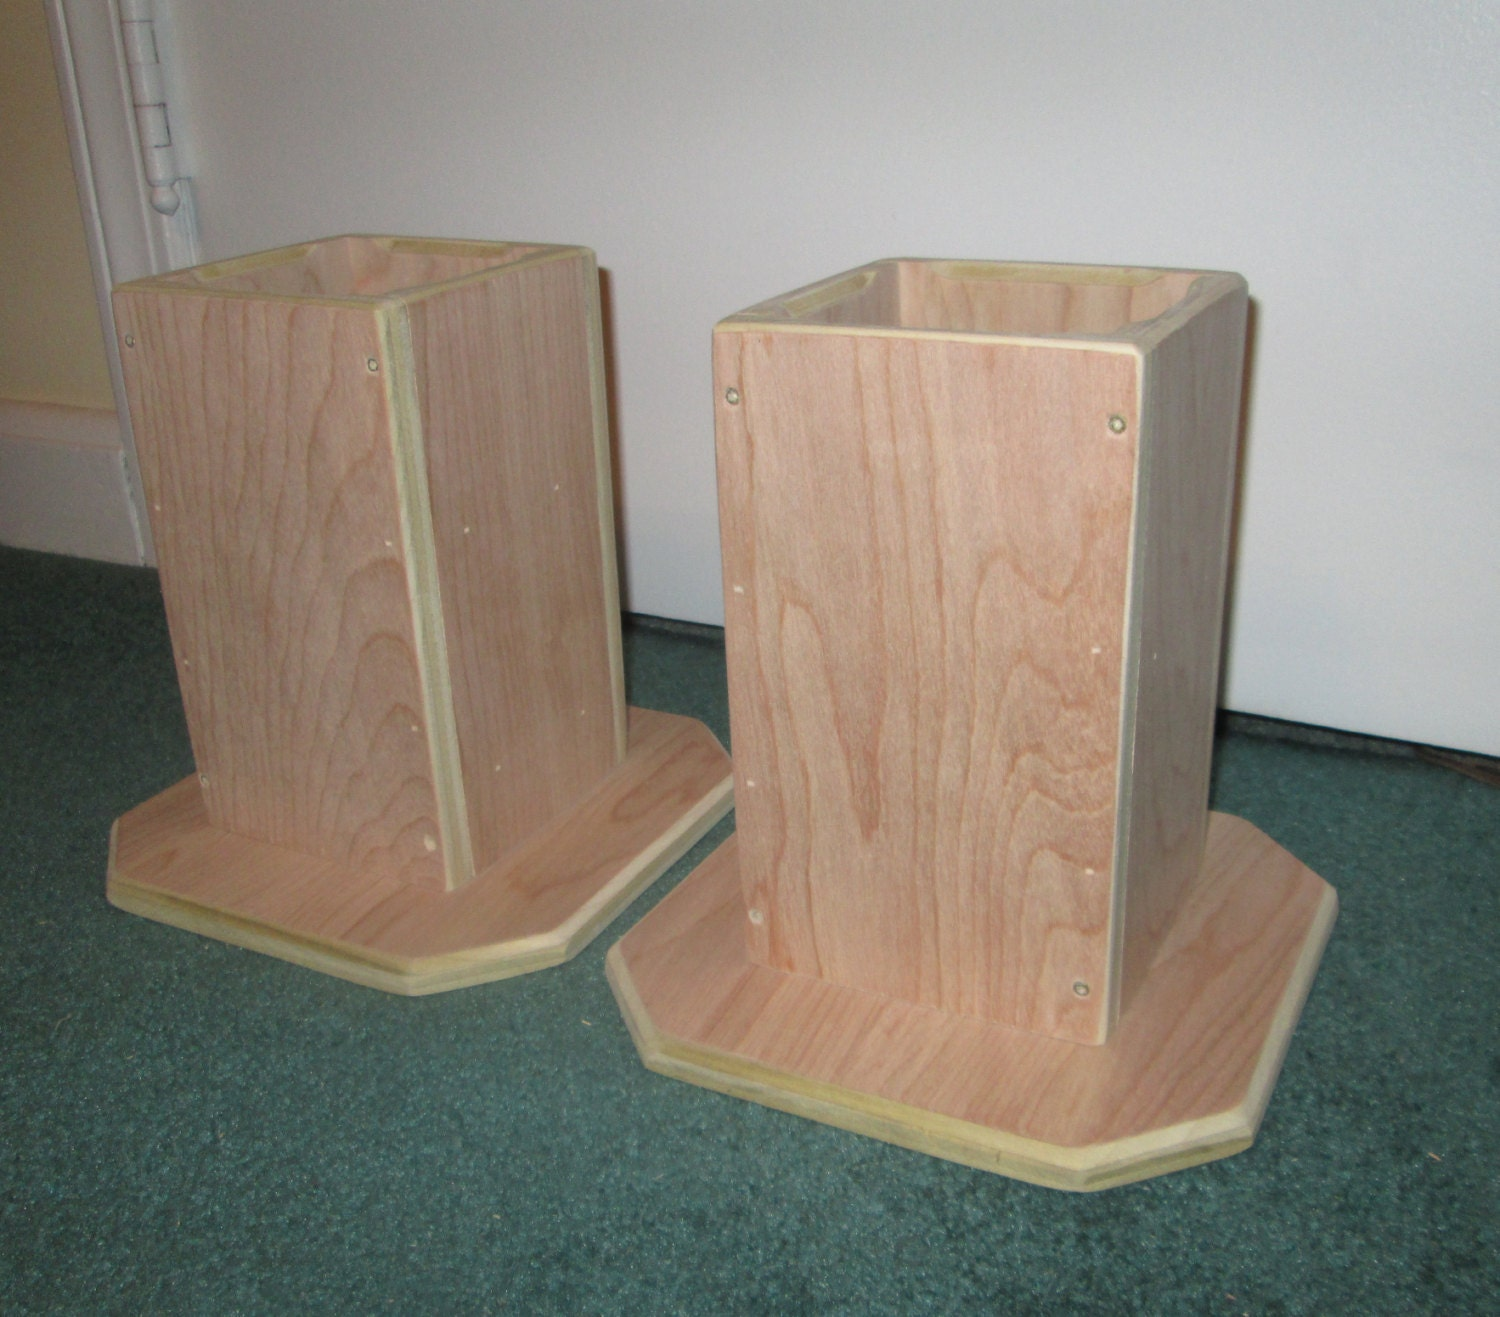 Dorm Room Bed Risers, 6 Inch All Wood Construction, Unfinished Square  Design   Raise Part 65